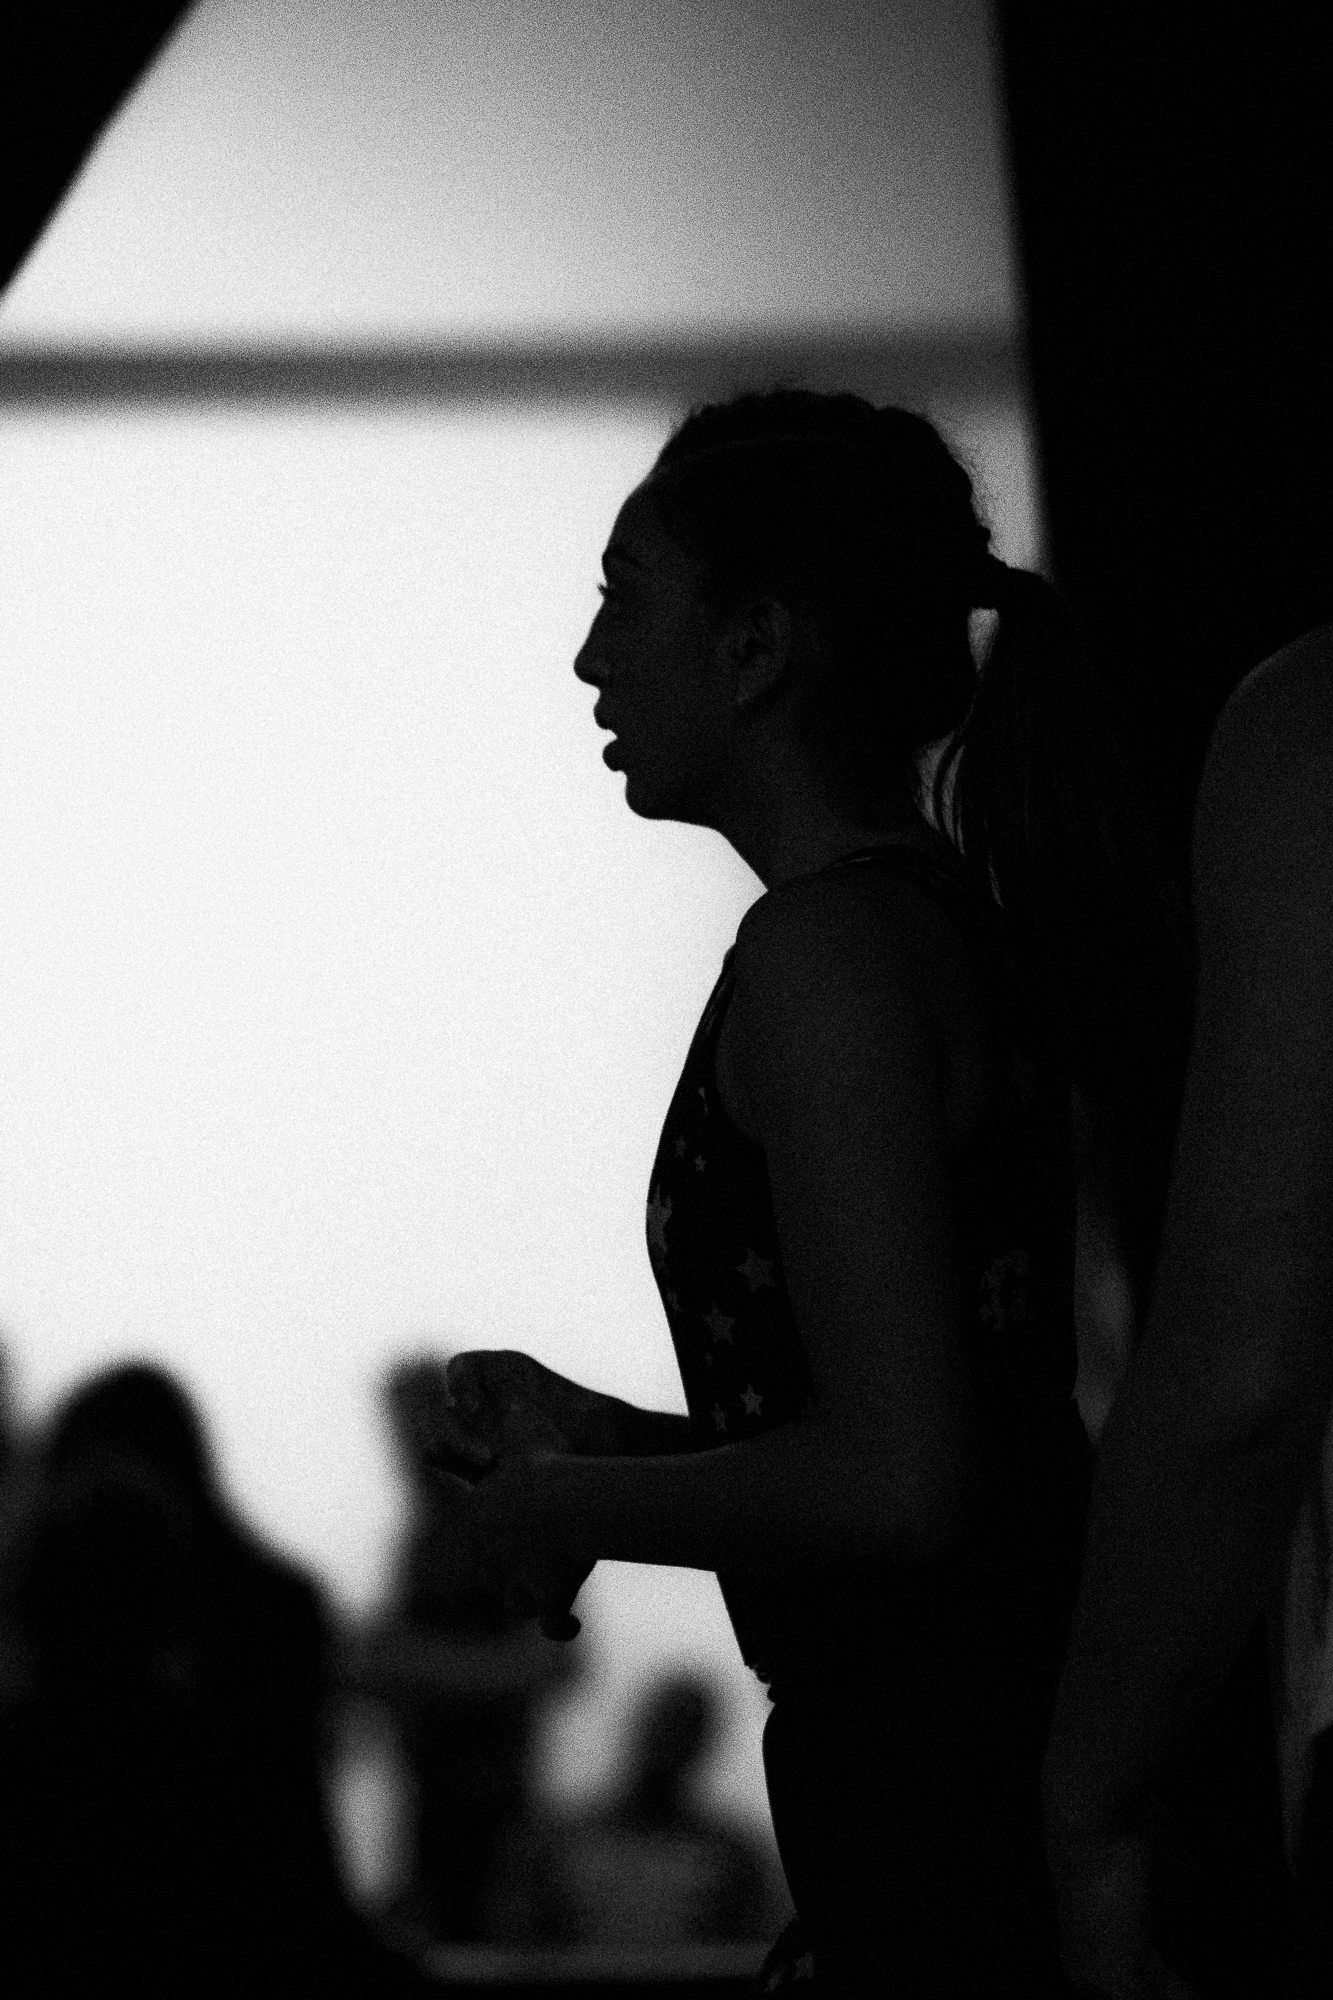 silhouette-photo-weightlifter-everyday-lifters-pictures